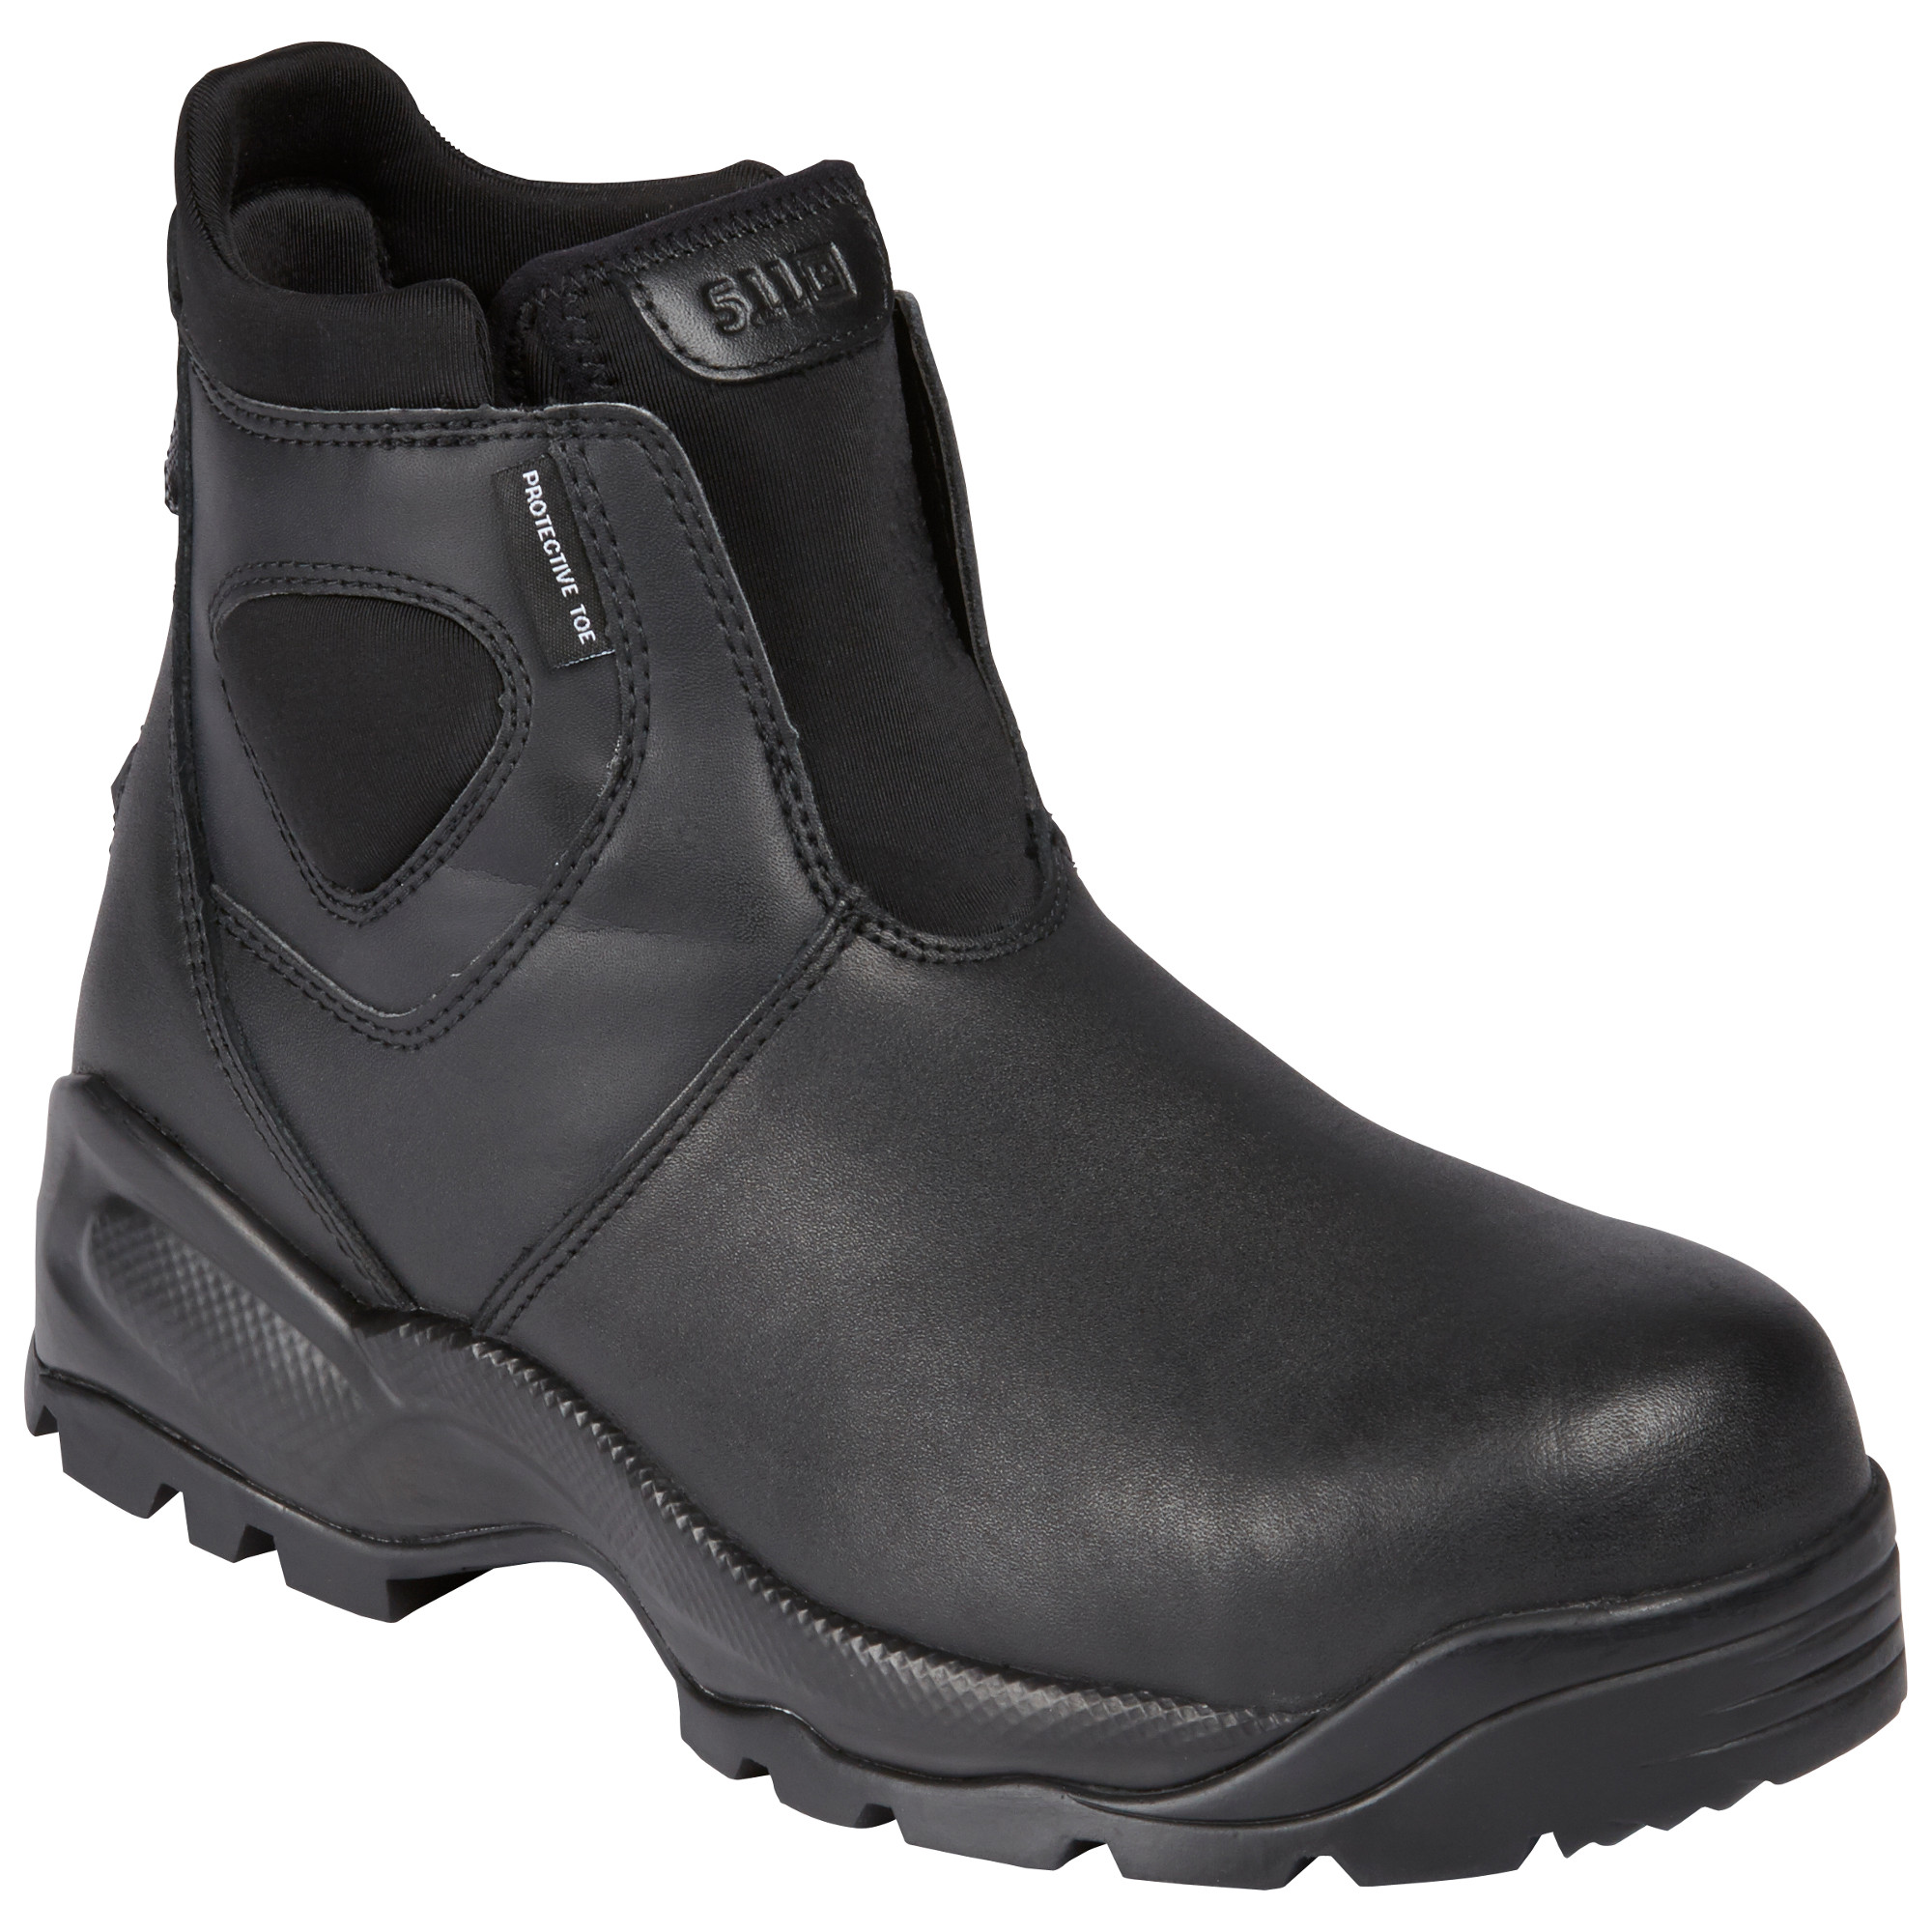 5.11 Tactical Company Cst 2.0 Boot | 12033-